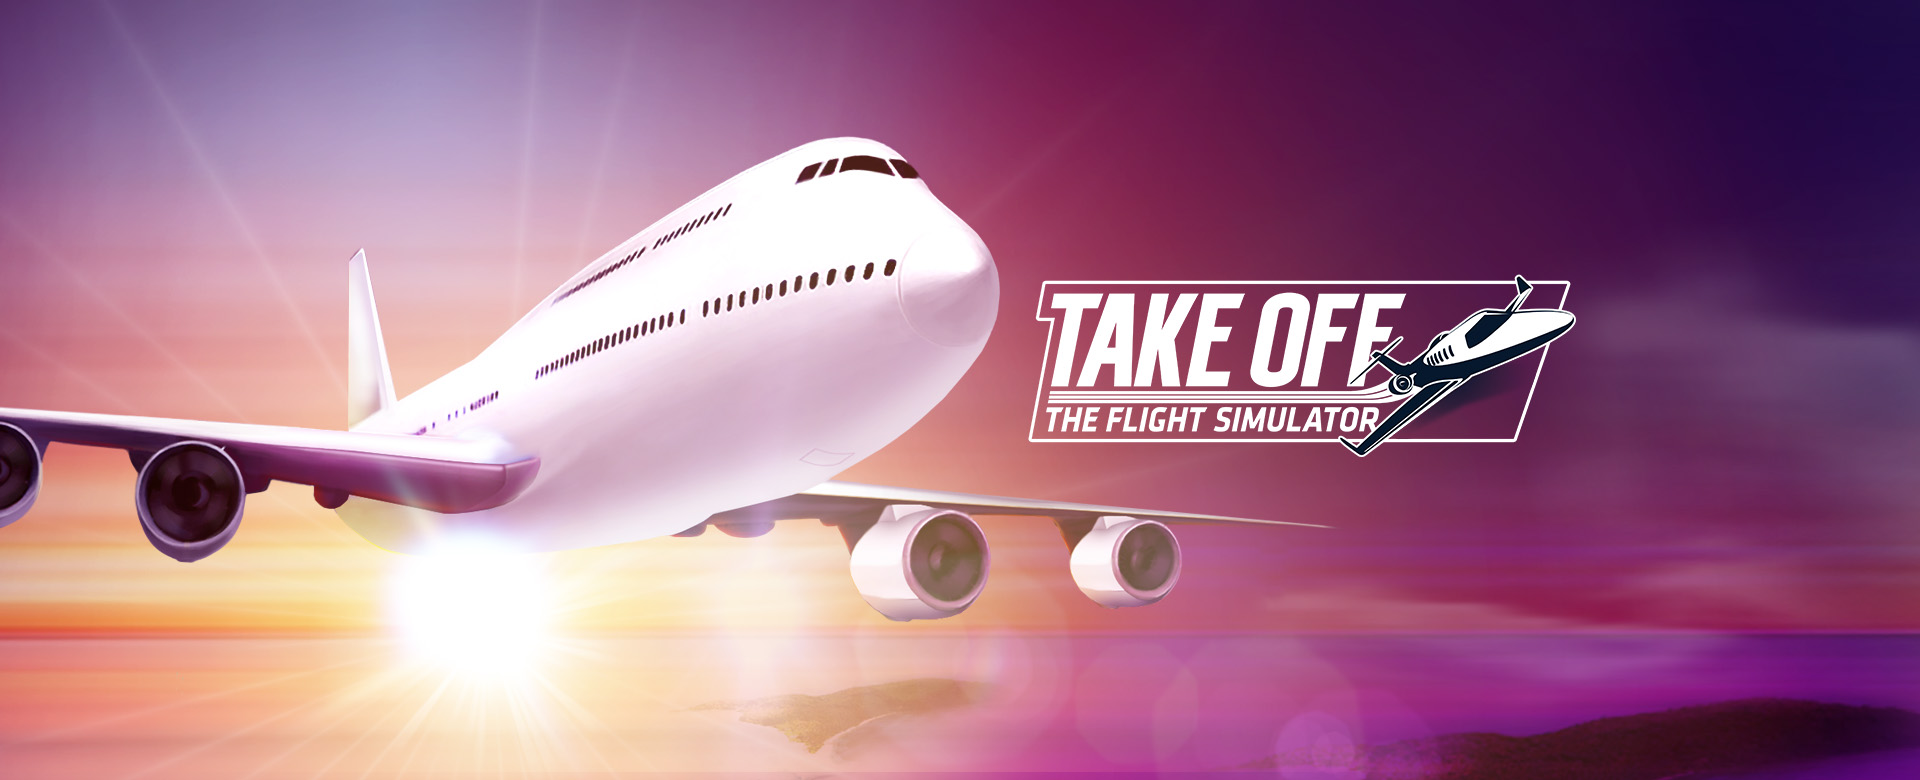 Take Off – The Flight Simulator for iPhone, iPad and Android